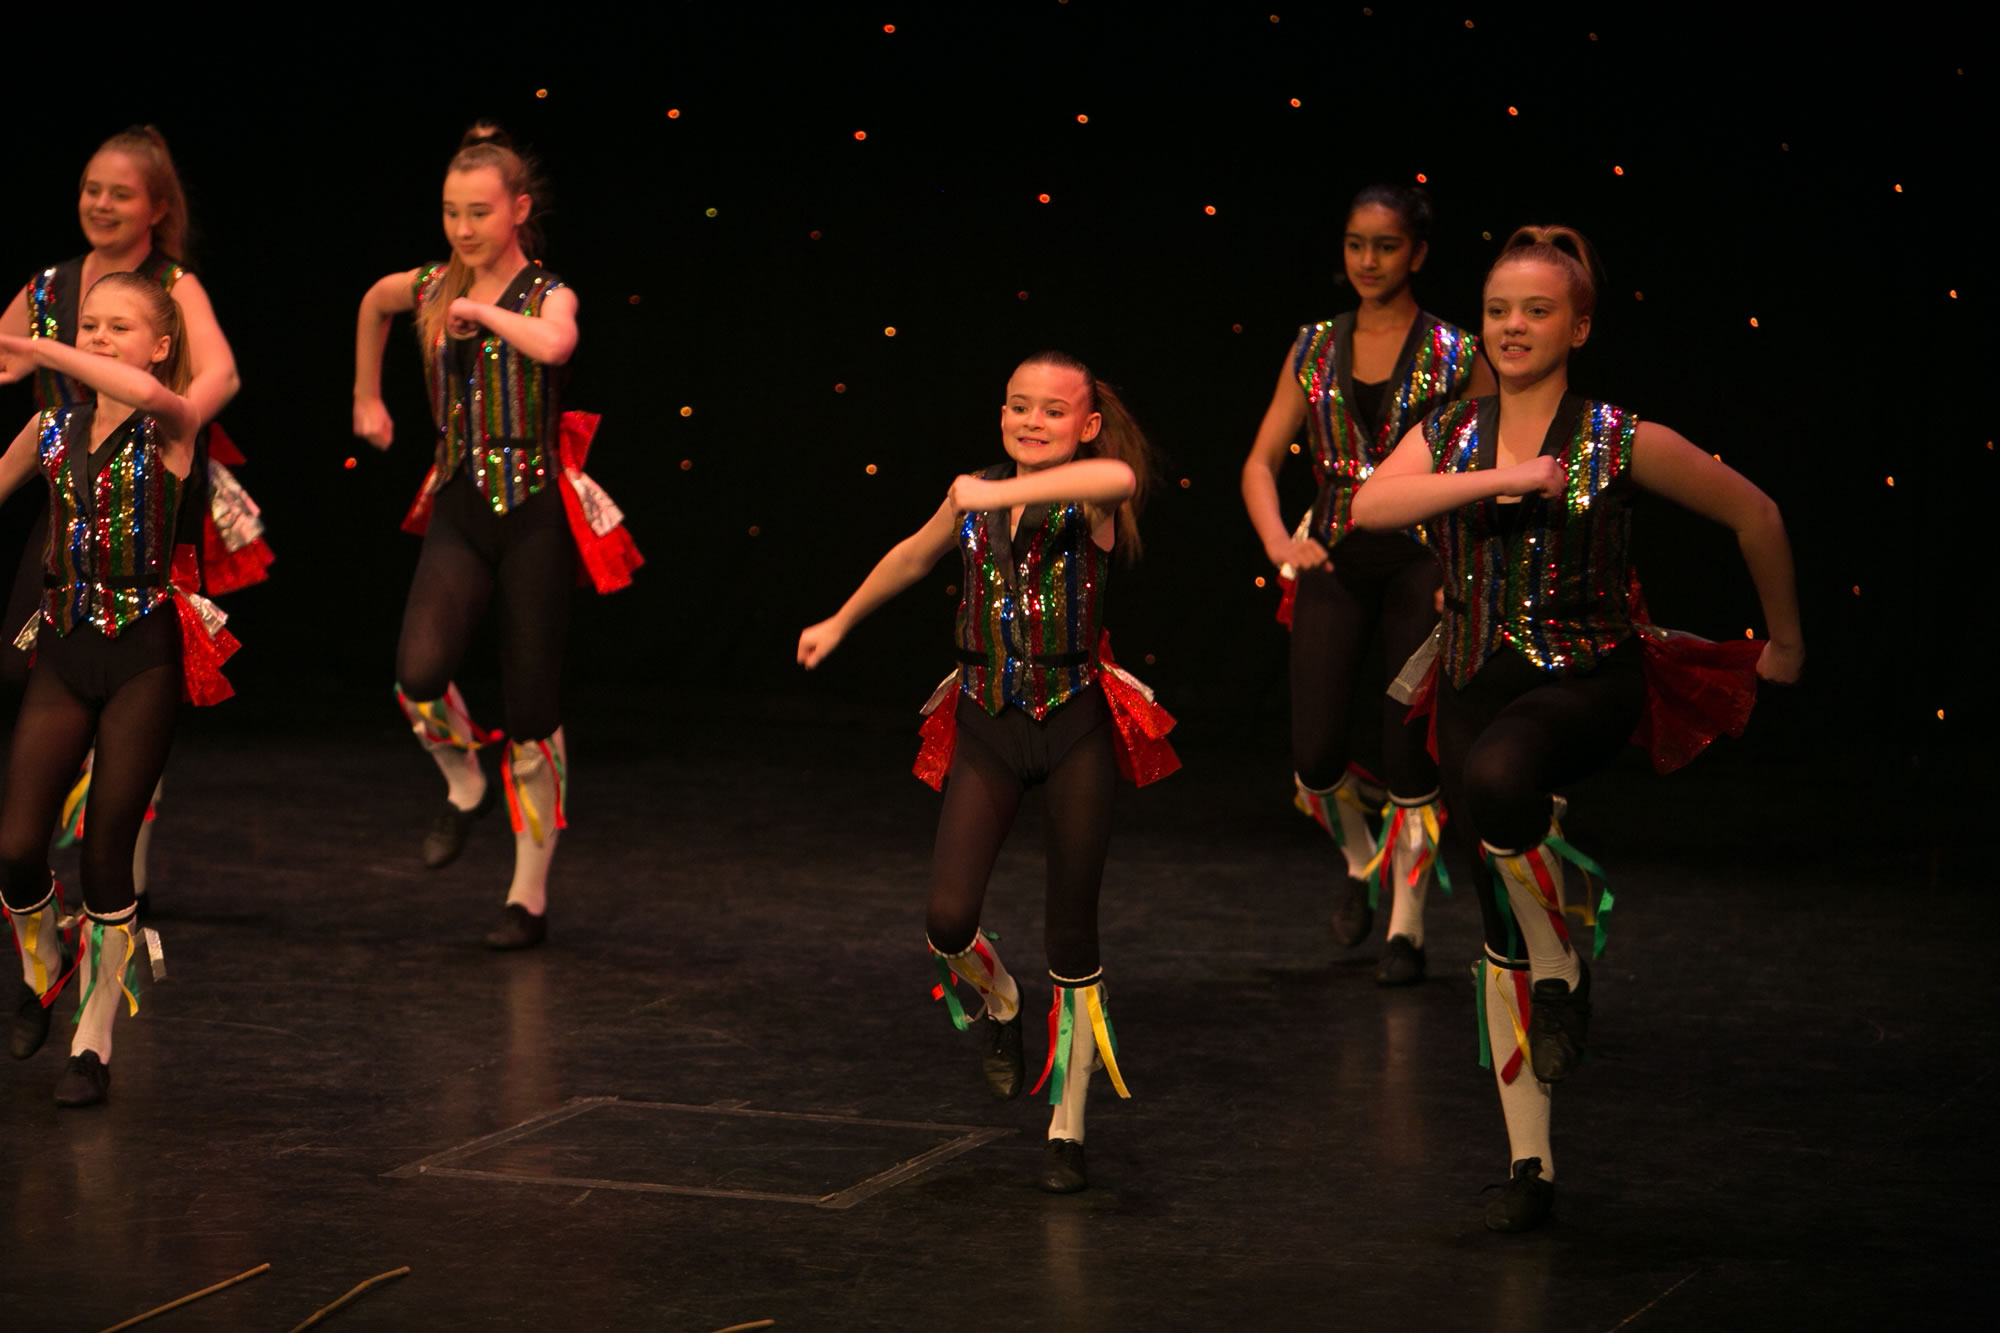 Hitchin_School_of_Dance_Show_2019-SM1_2658.jpg